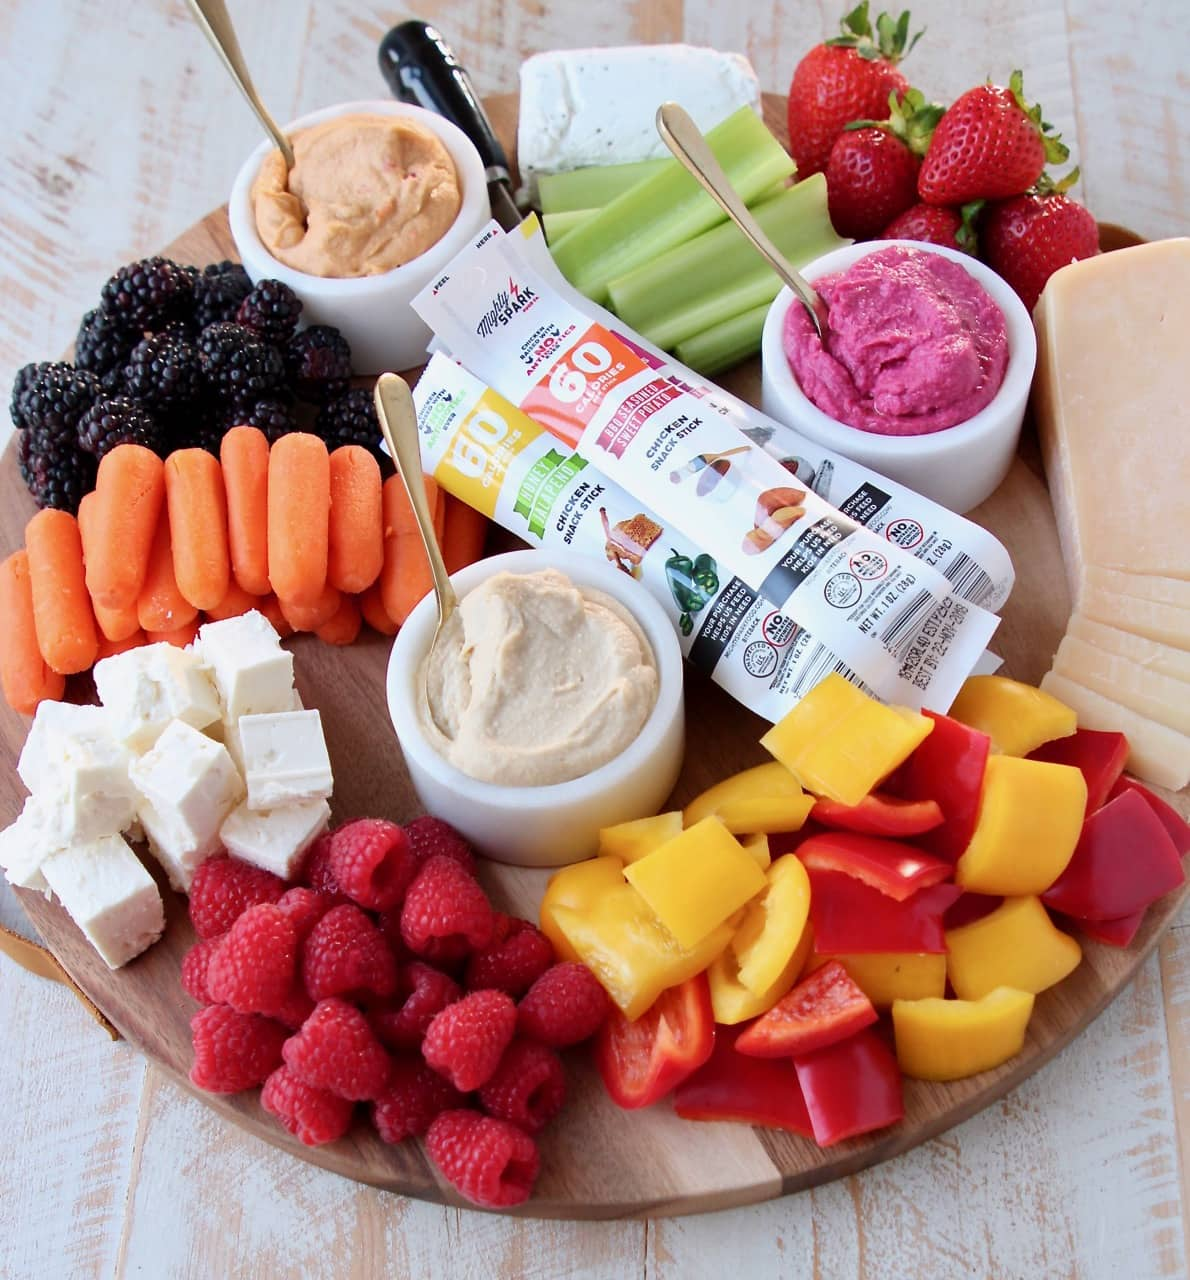 Low Calorie Charcuterie Board with Cheeses, Veggies, Berries, Hummus and Chicken Snack Sticks